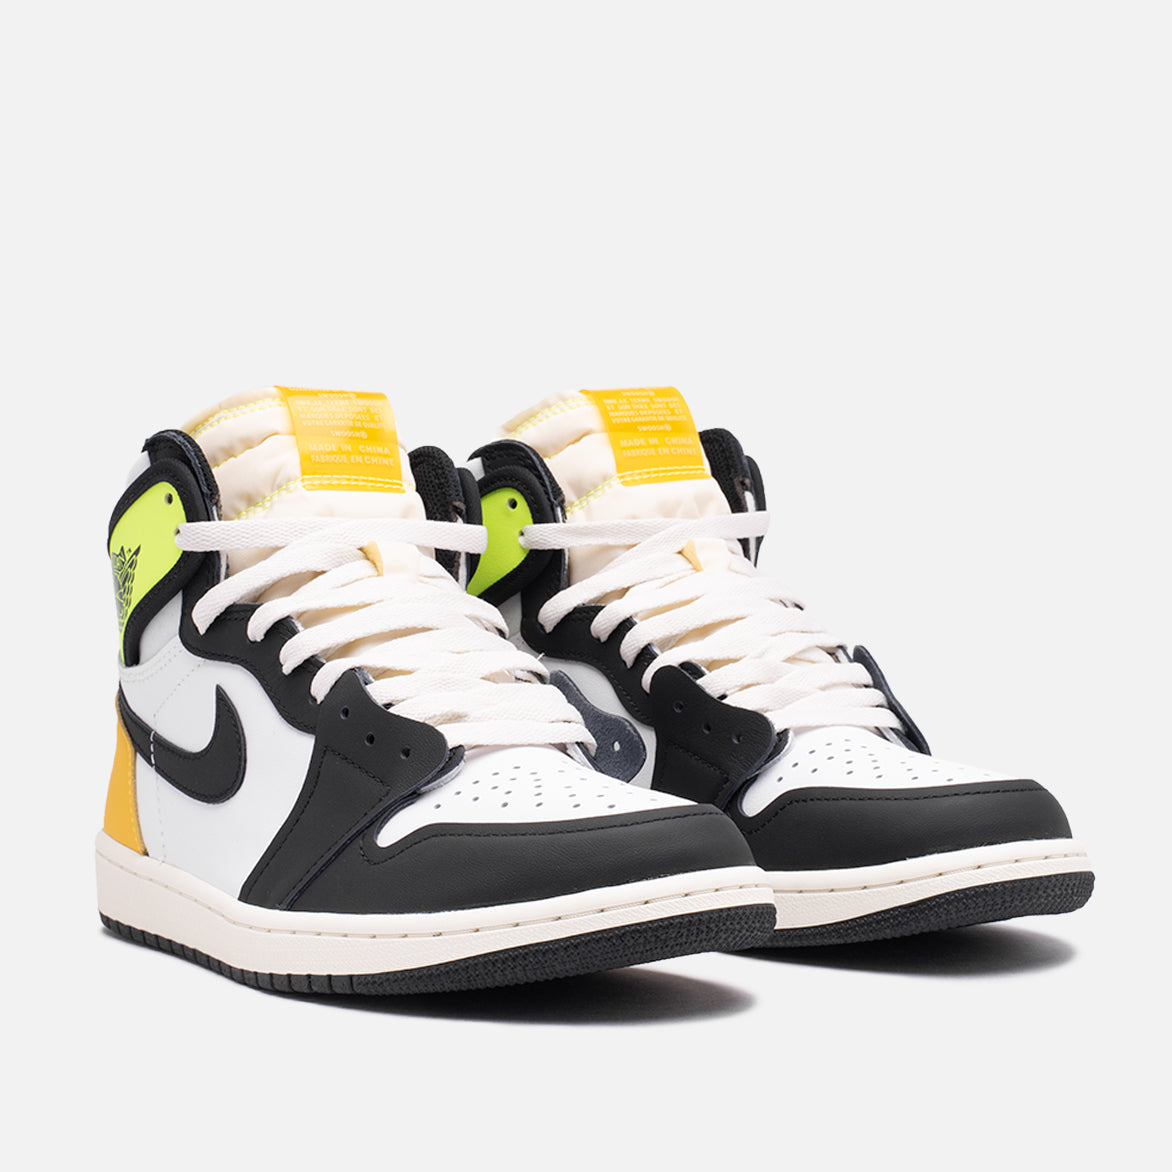 "AIR JORDAN 1 RETRO HIGH OG ""VOLT GOLD"""